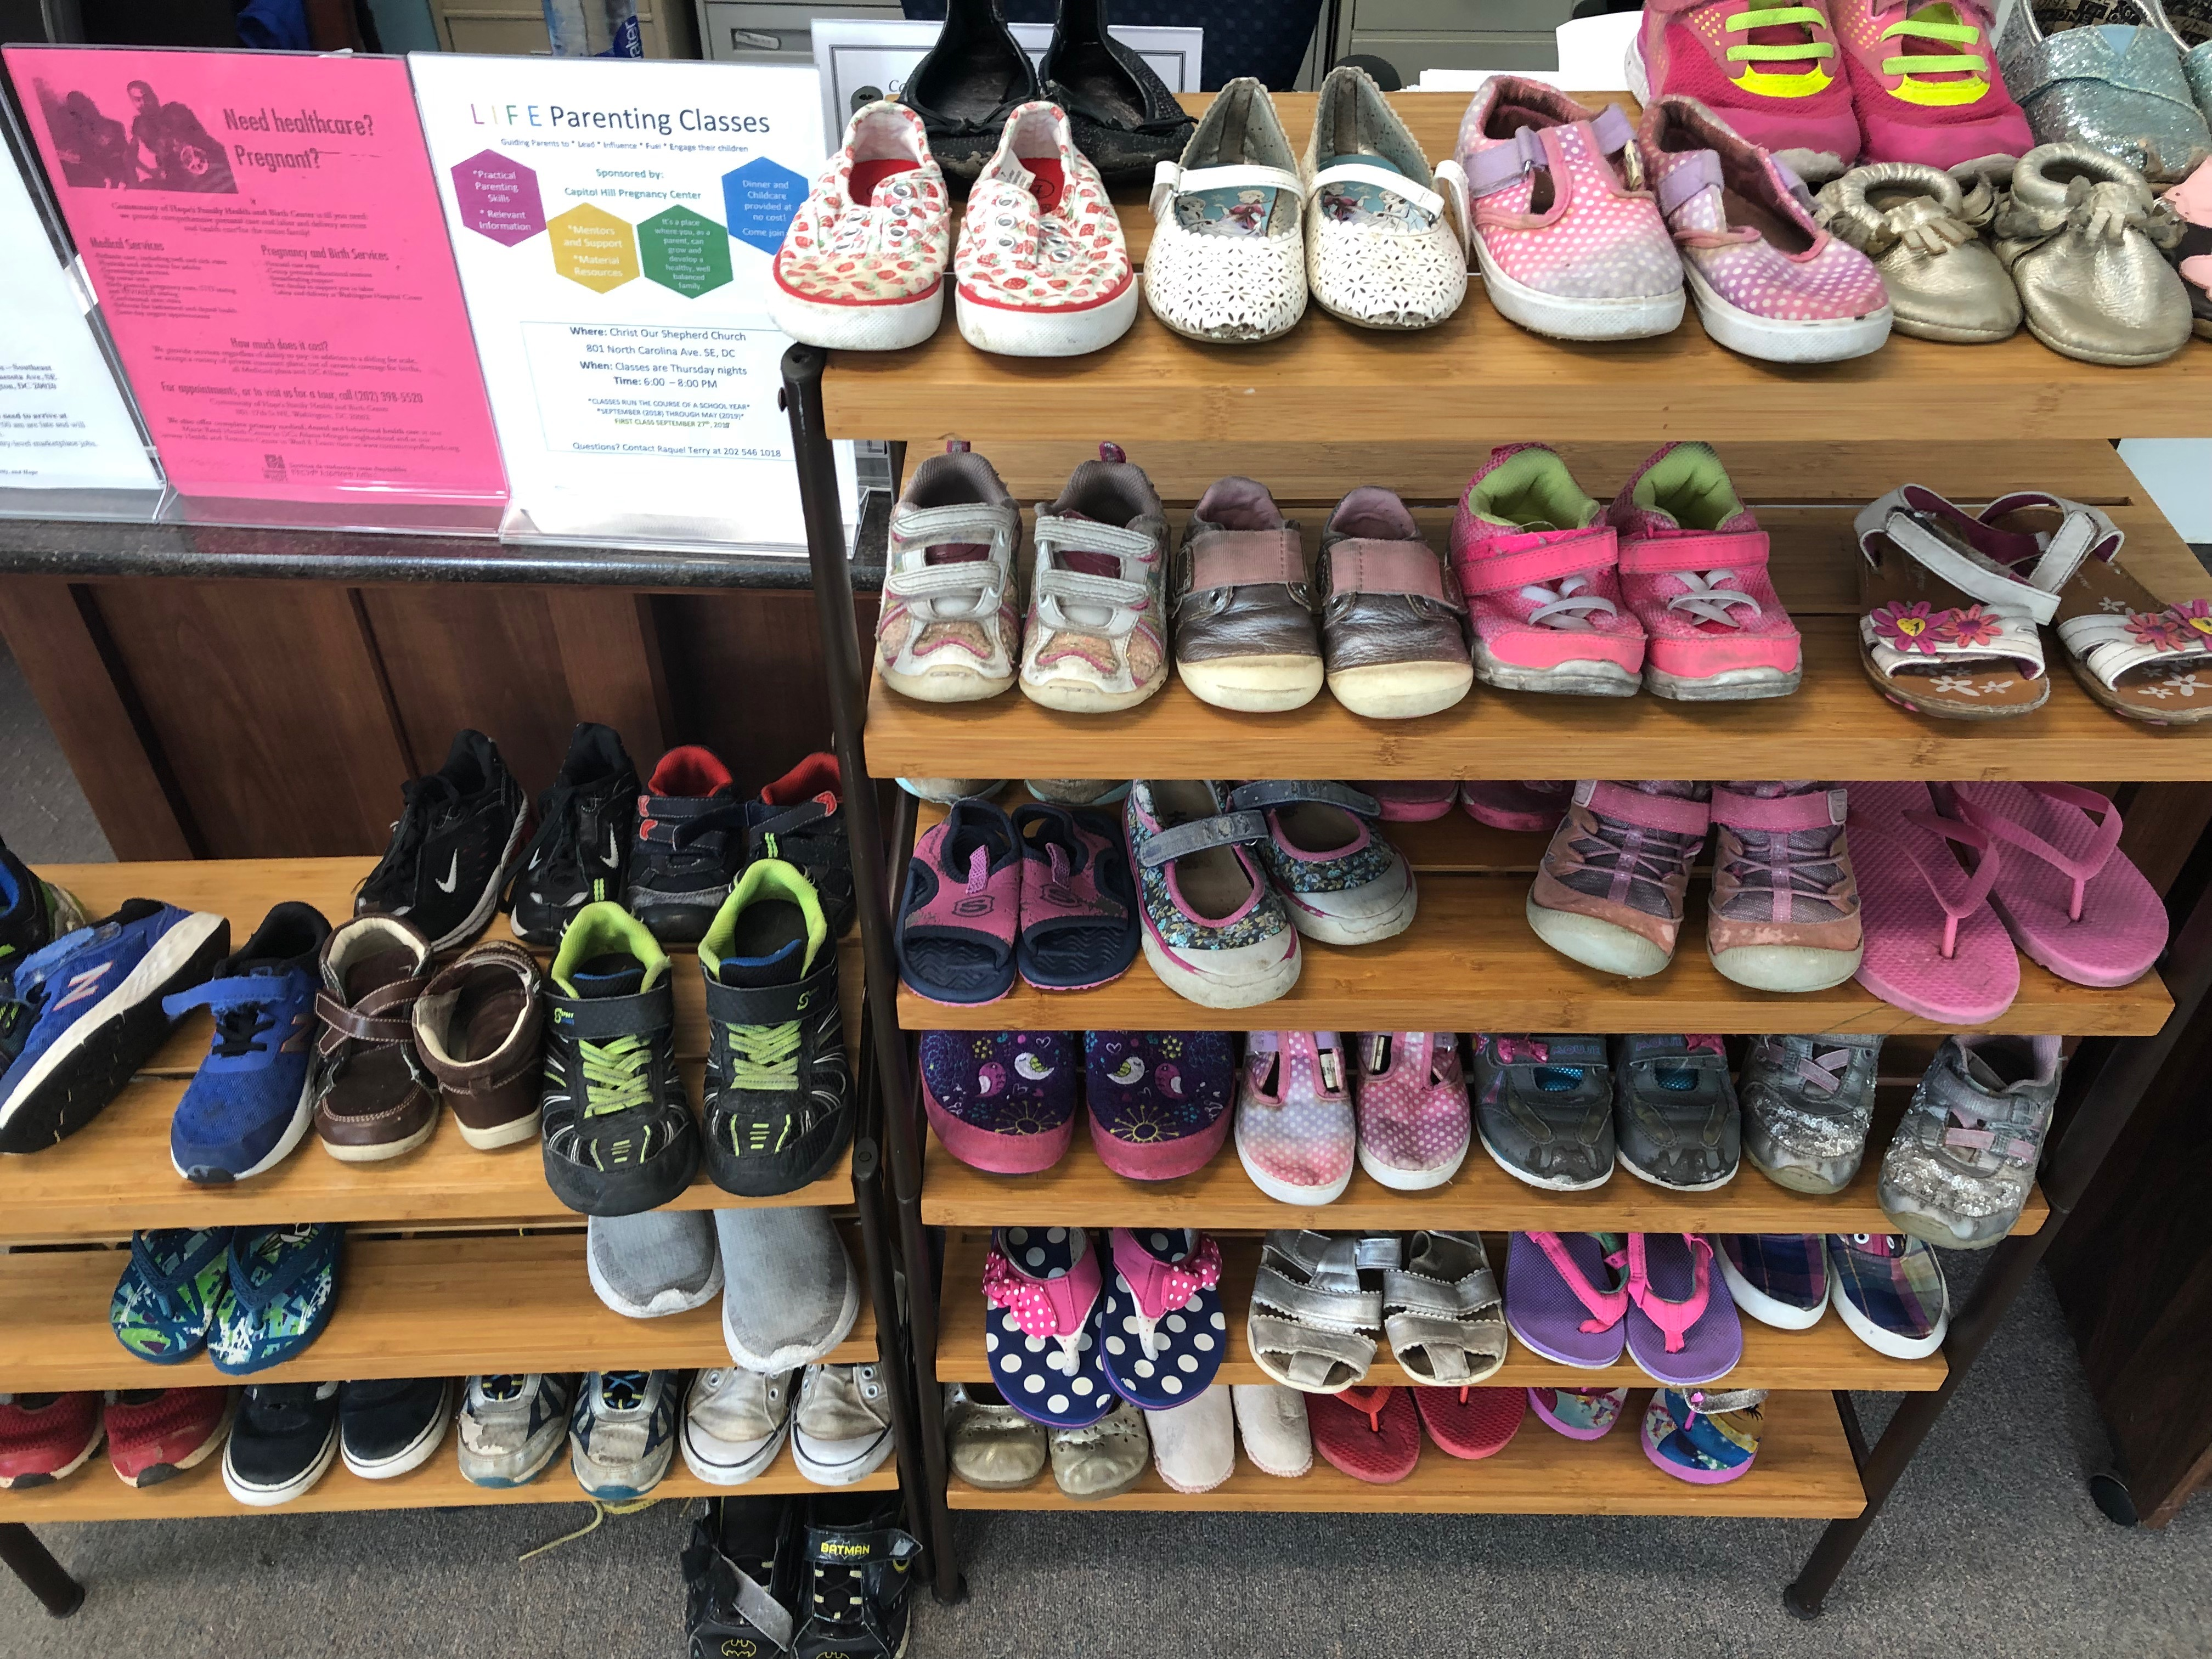 Shoes to be given to children in need at the Capitol Hill Pregnancy Center. Photo courtesy of Mary Margaret Olohan, Daily Caller News Foundation.